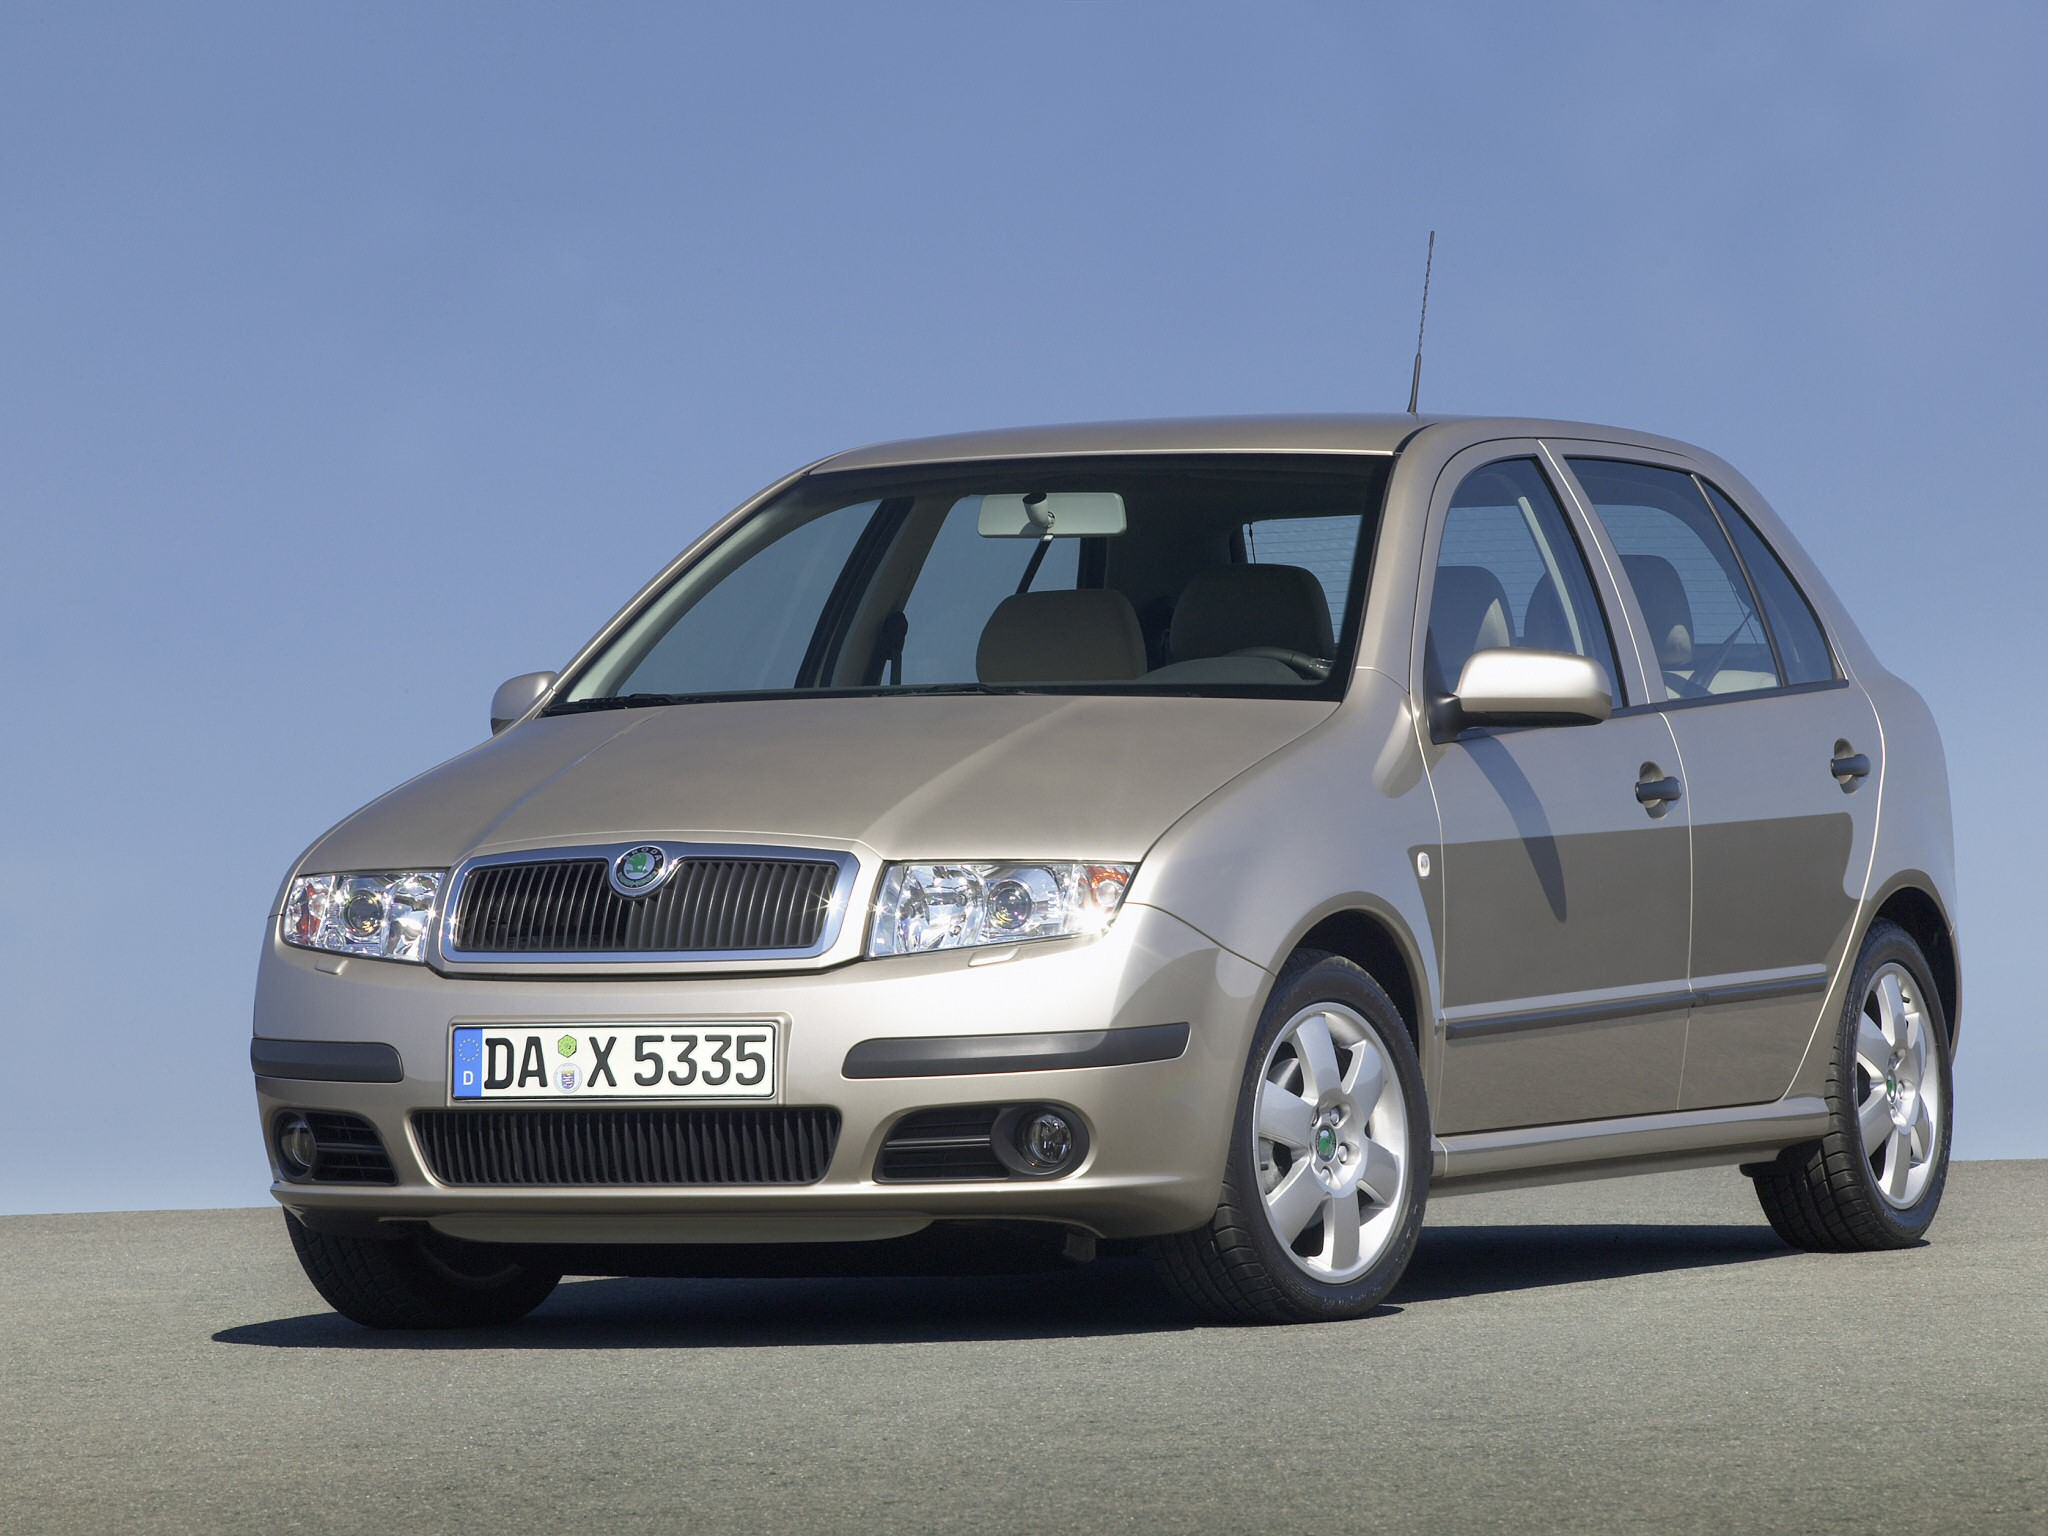 2005 skoda fabia photos informations articles. Black Bedroom Furniture Sets. Home Design Ideas